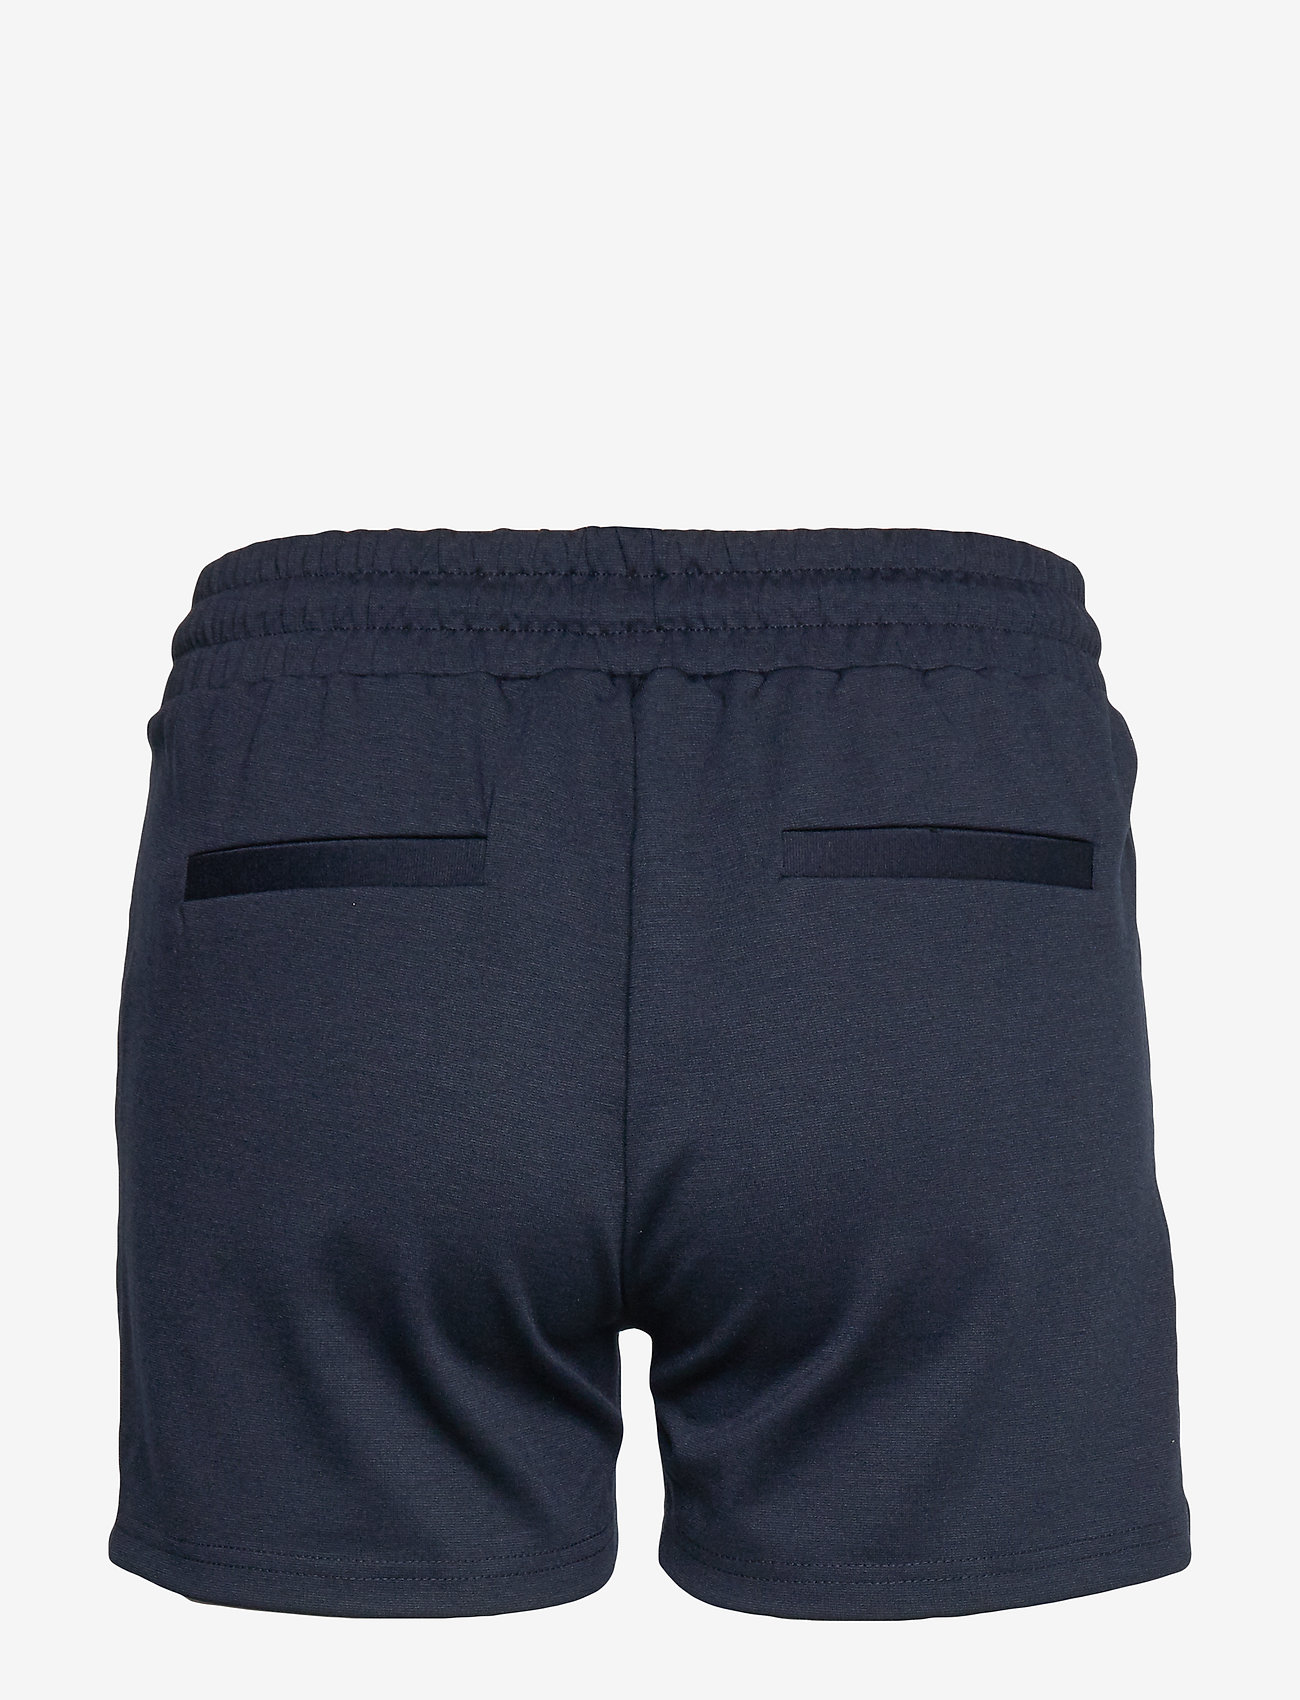 ICHI - KATE SHO - casual shorts - total eclipse (solid)